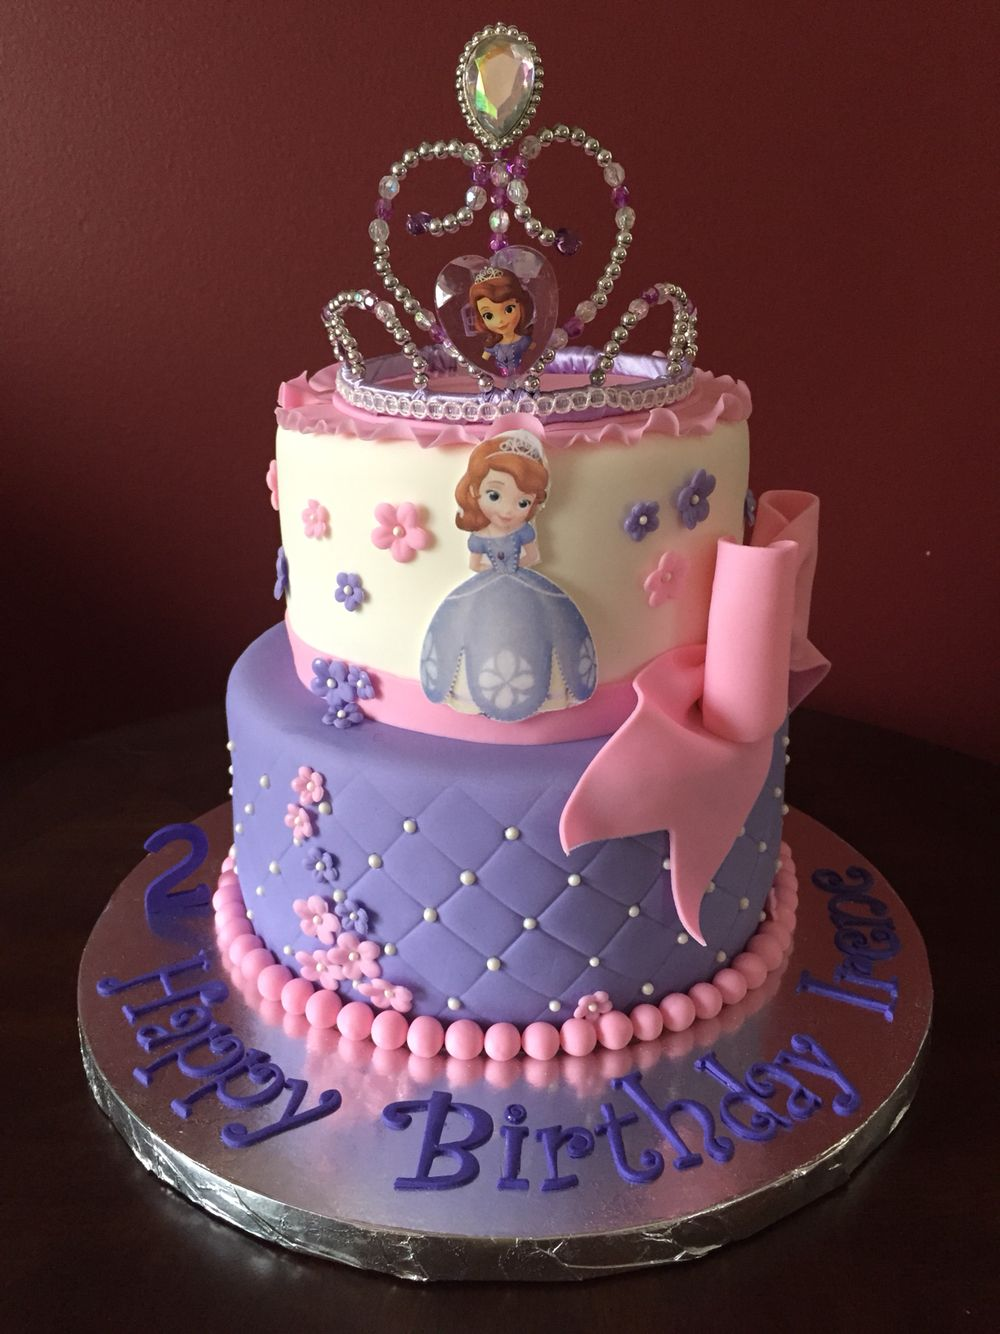 Sofia The First Cake Design Goldilocks : Sofia the first birthday cake decorating ideas